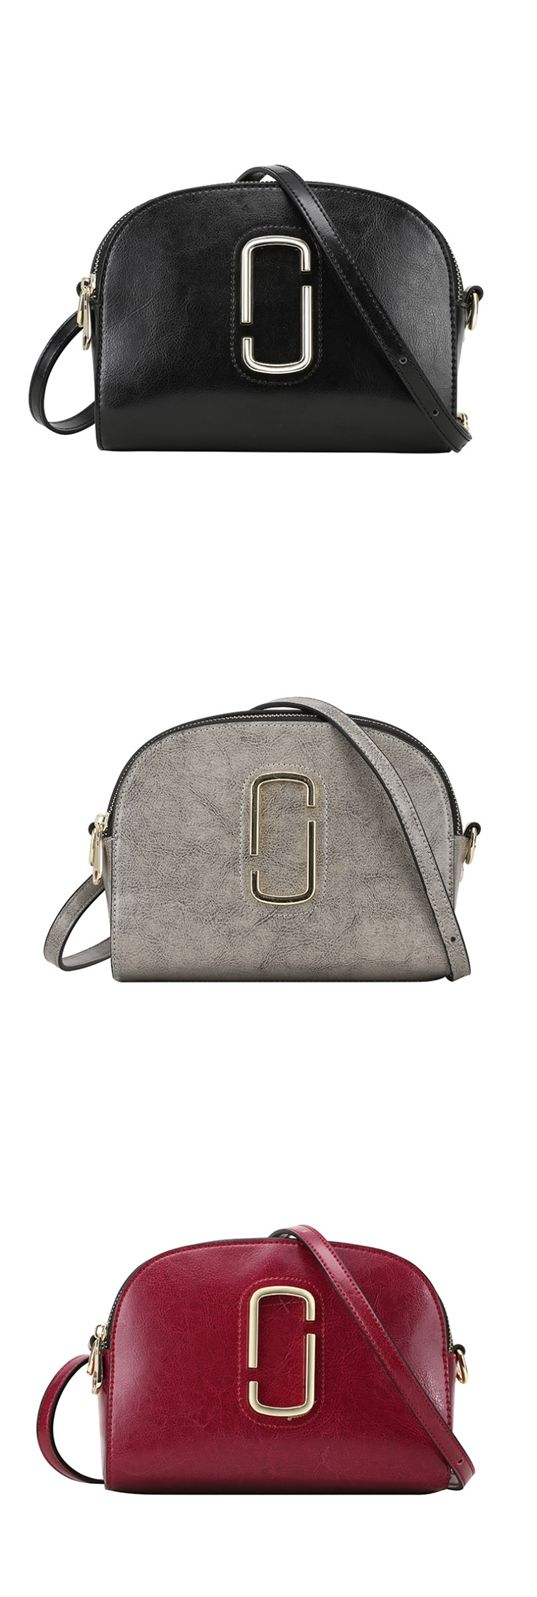 Vintage Women's Messenger Bag Genuine Leather Shoulder Bag Mini Flap Bag Side Purse Cross Body Bags Bagail.com